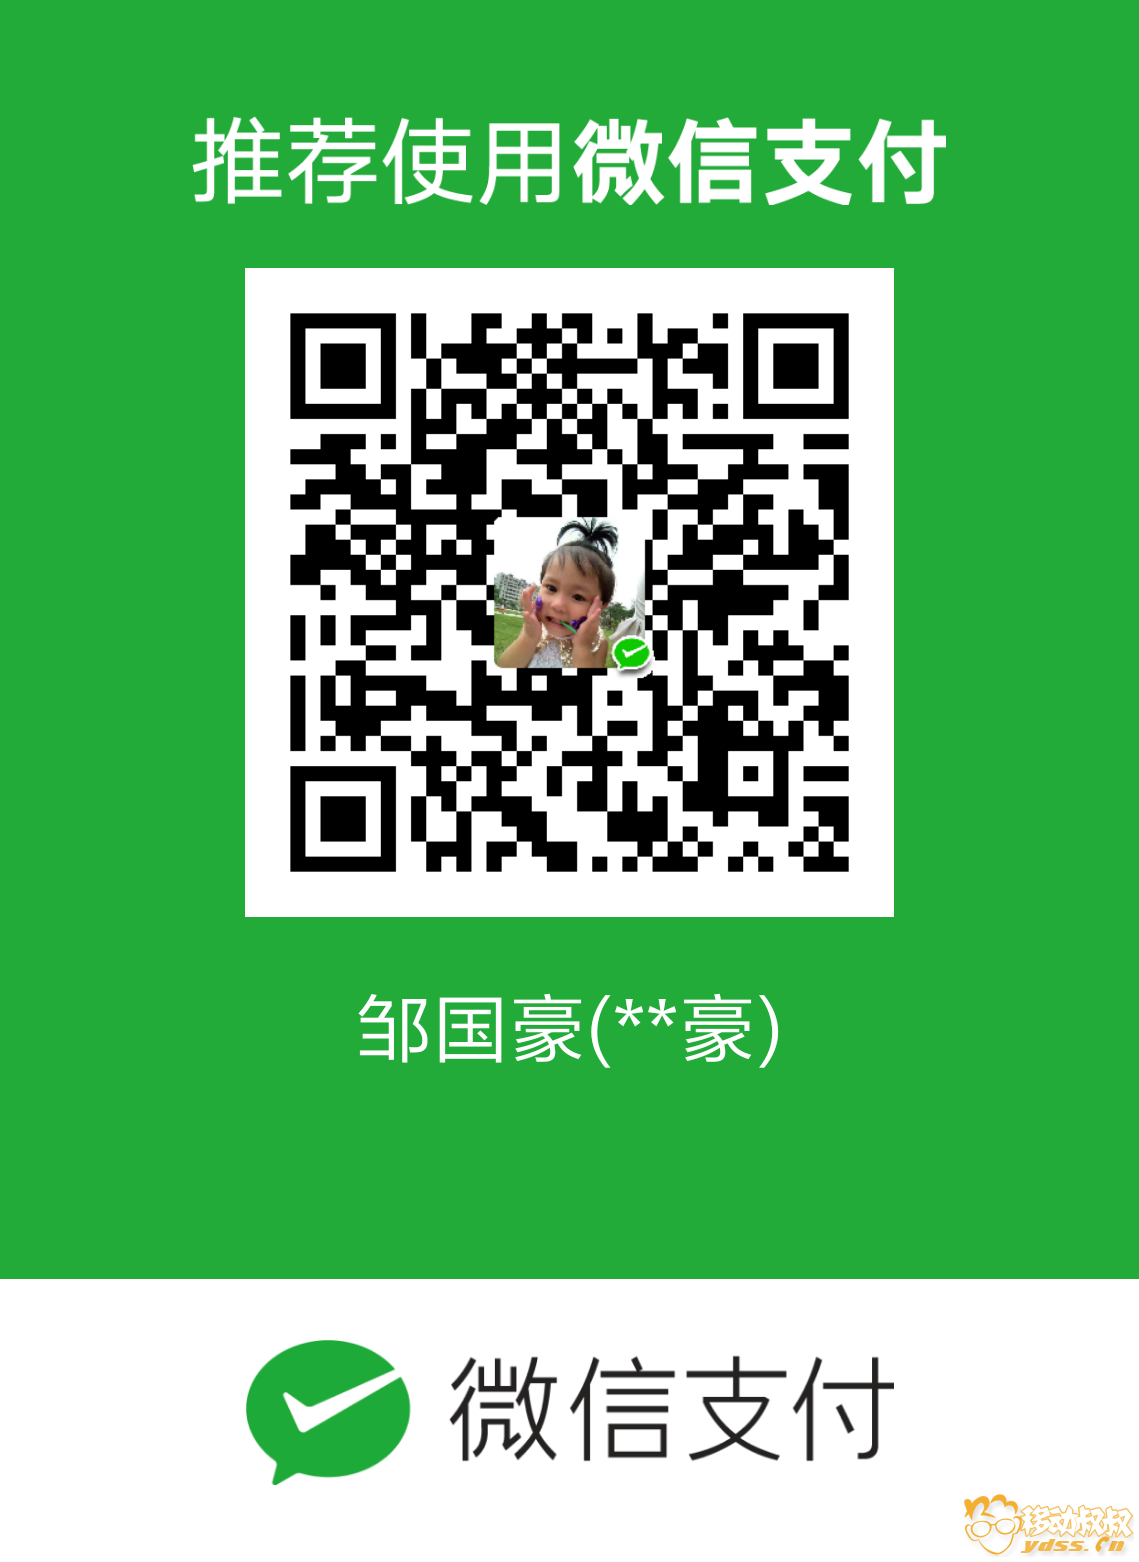 mm_facetoface_collect_qrcode_1514563172541.png